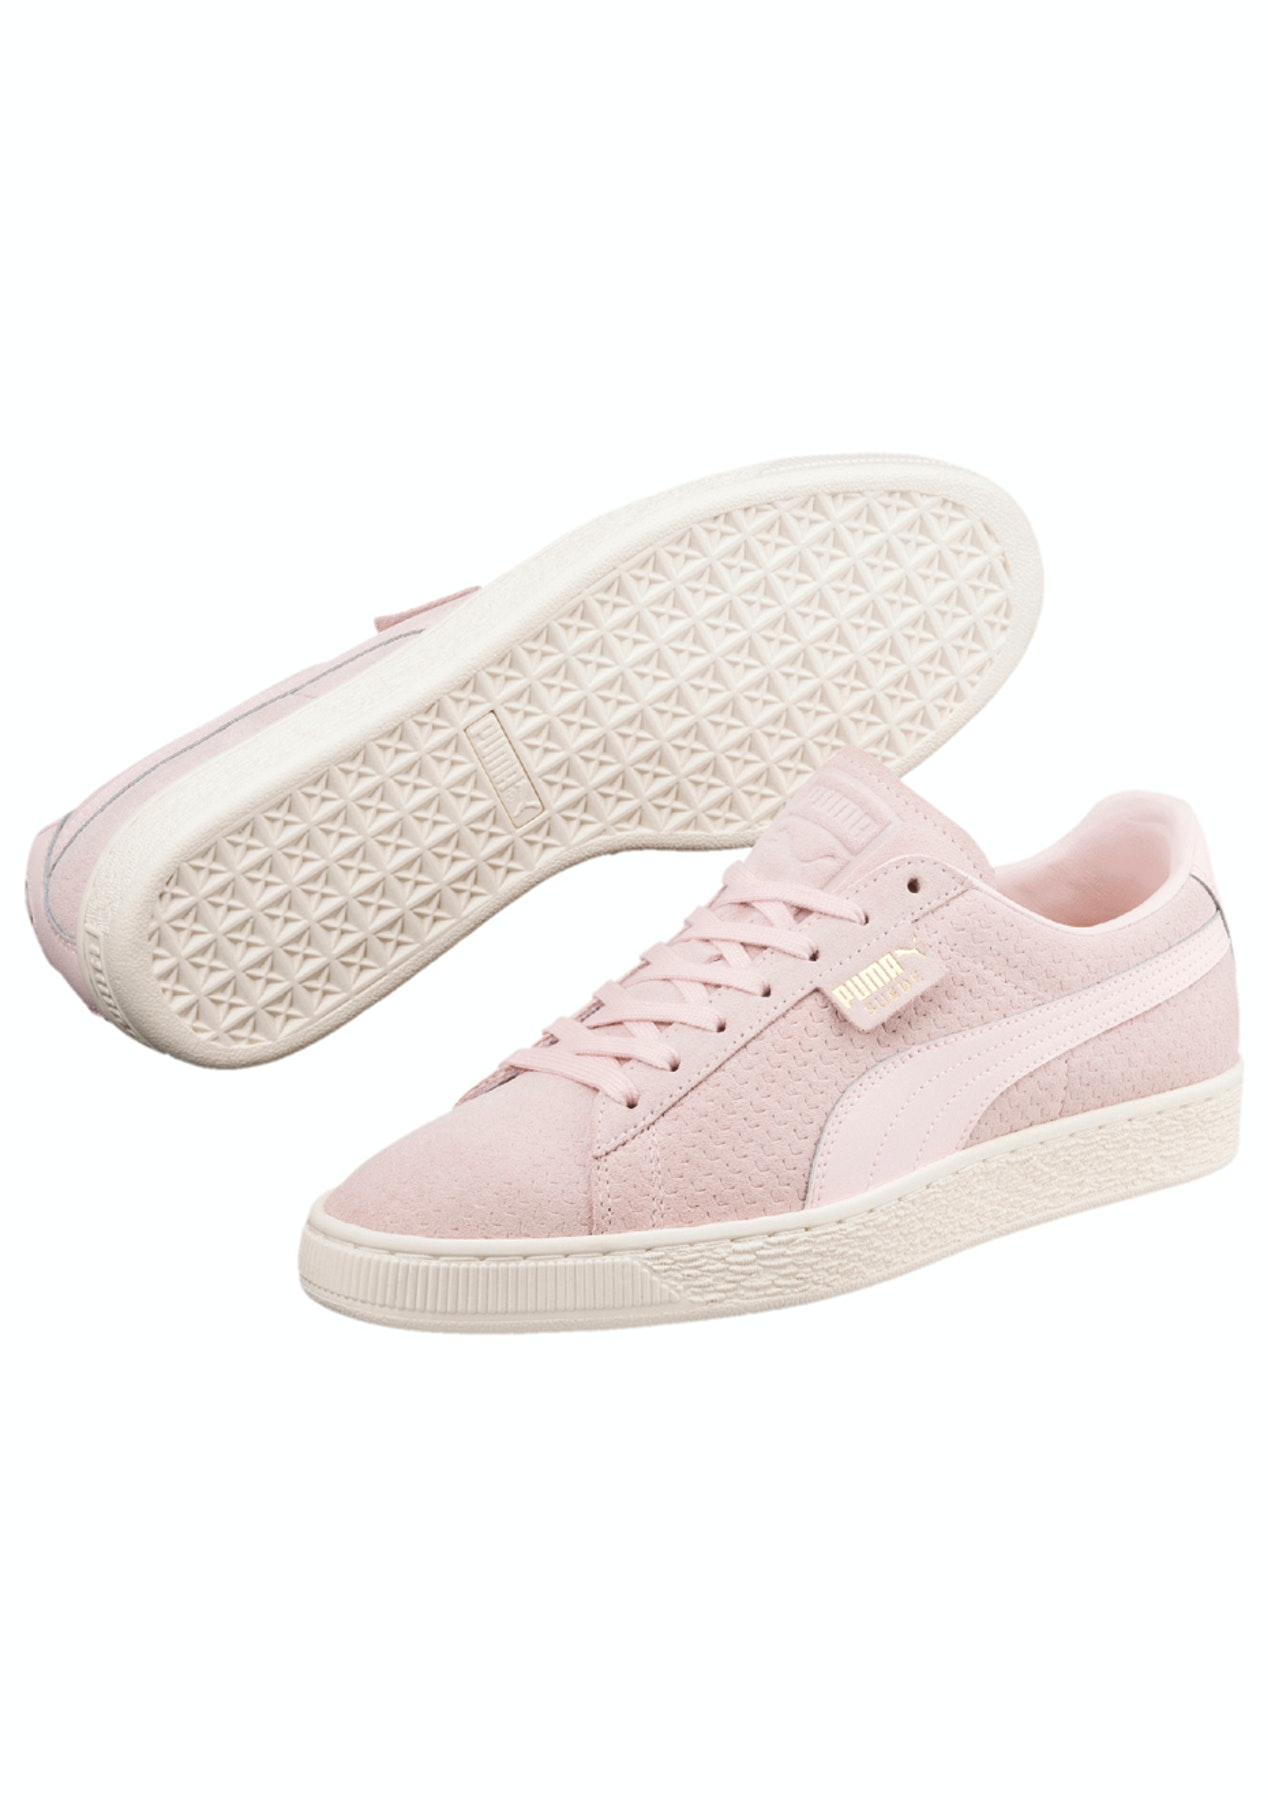 ccc464790f3 Puma Womens - Suede Classic Perforation - Pearl Whisper White - Boxing Day  Mens Clearance - Onceit